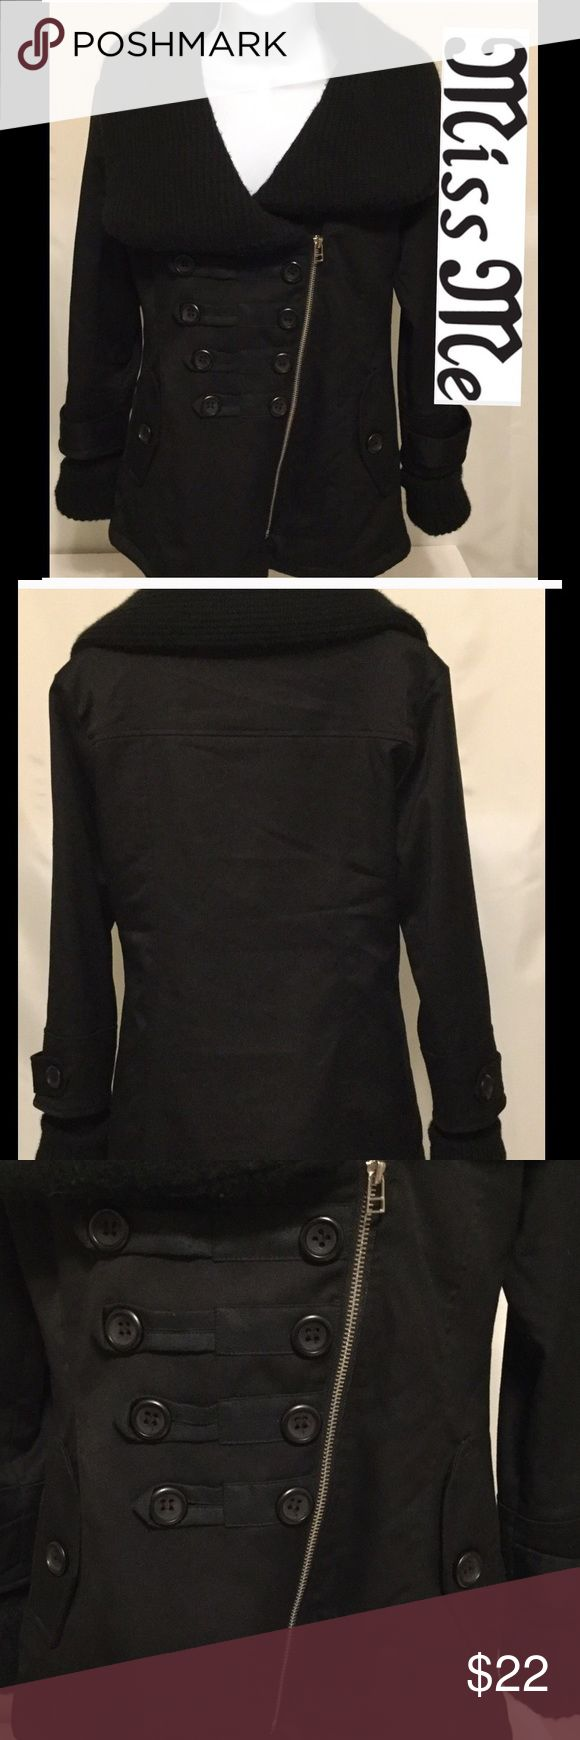 Miss Me coat black women's S/P stylish coat black This is a women's S/P black very stylish Miss Me coat.  The outside of the coat is flawless with no rips, tears, stains or discoloration.  However, the inside of the coat has two tears at the seams, please refer to picks and comes from a smoke free home.  Priced accordingly.  Overall very nice name brand coat.  Buy with confidence I am a top rated seller, mentor and fast shipper.  Don't forget to bundle and save.  Thank you. Miss Me Jackets…